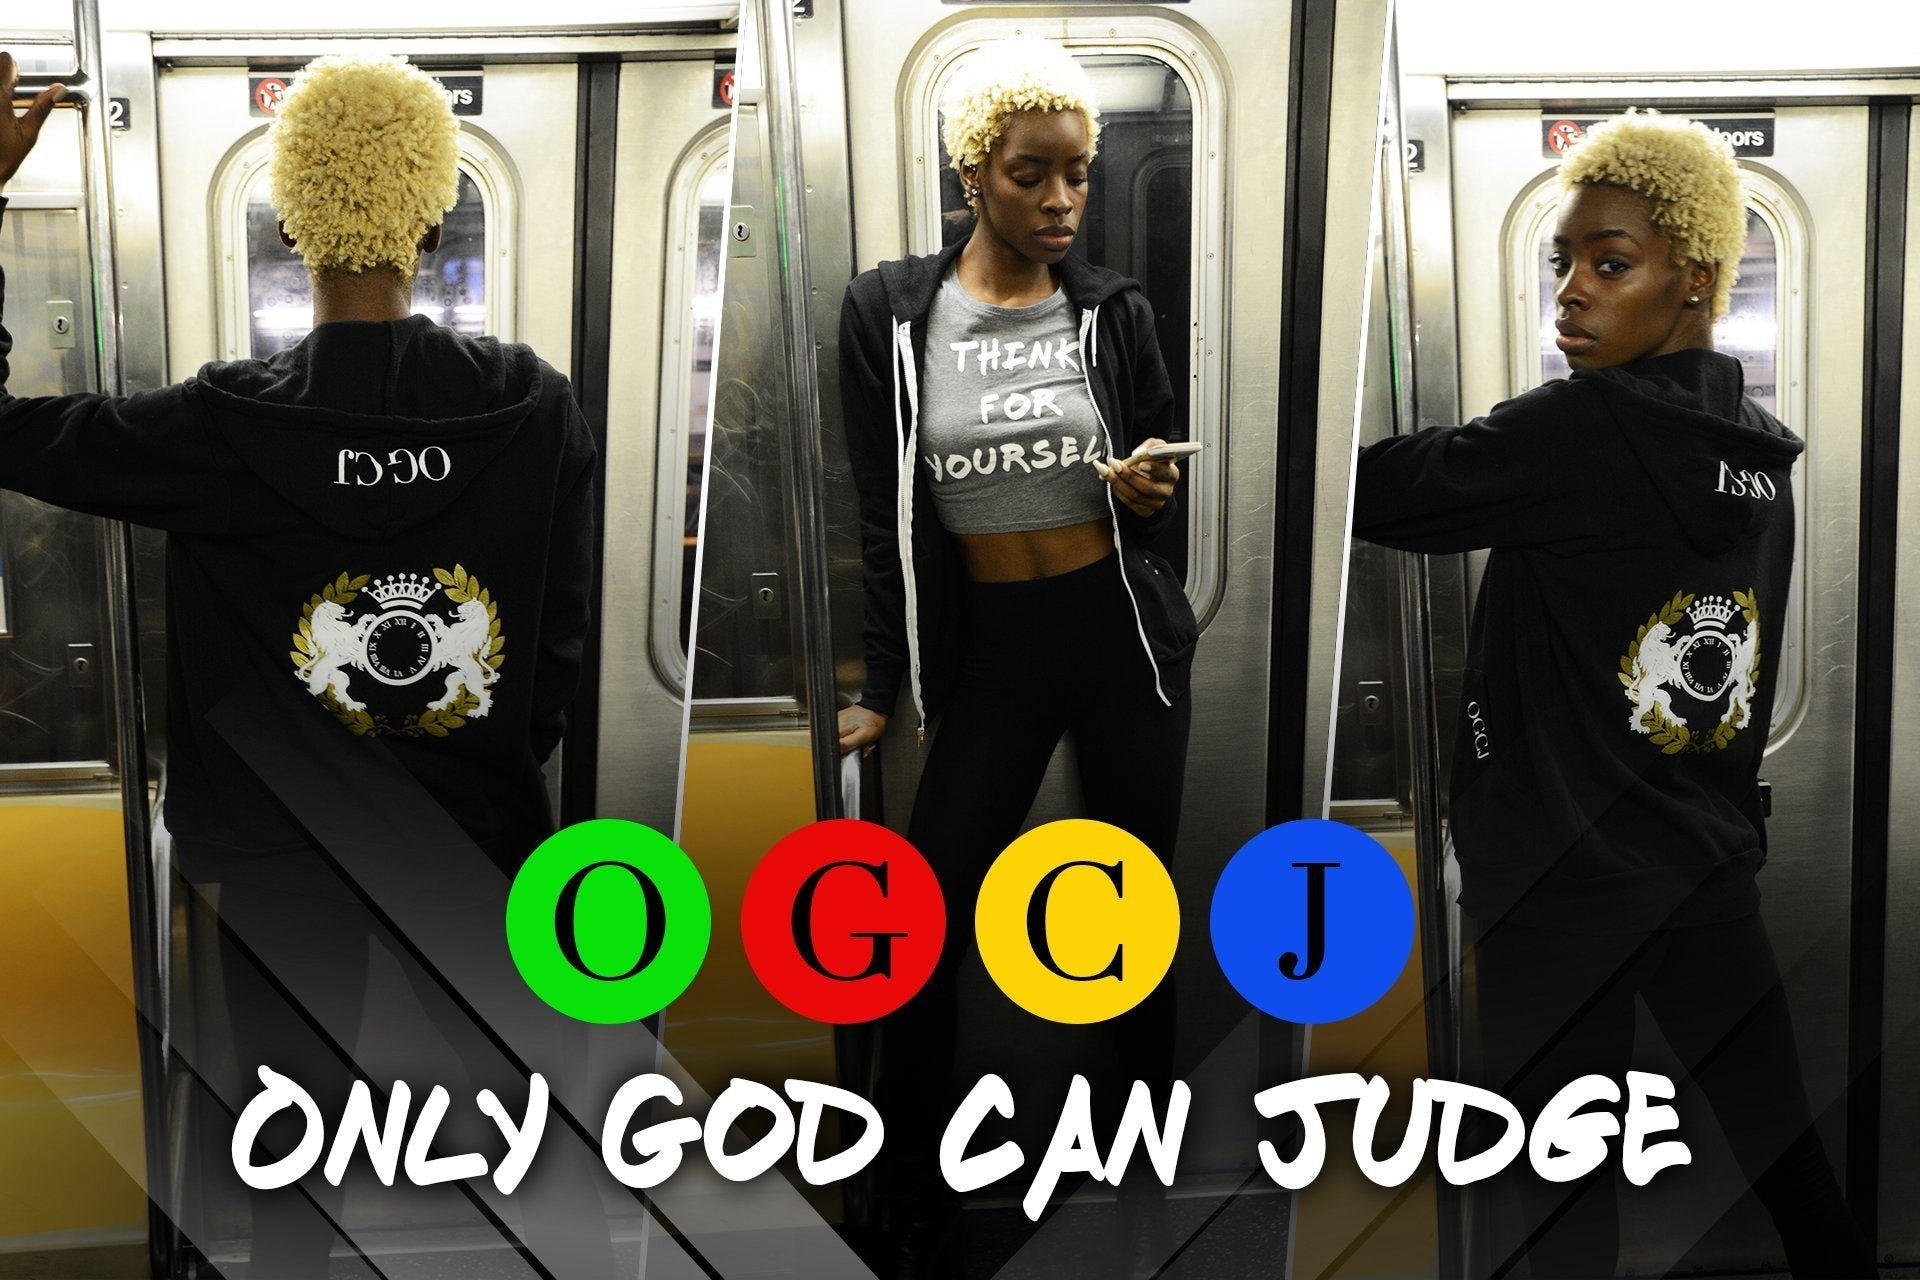 OGCJ - Only God Can Judge Streetwear Clothing Company; think for yourself collection, men and women